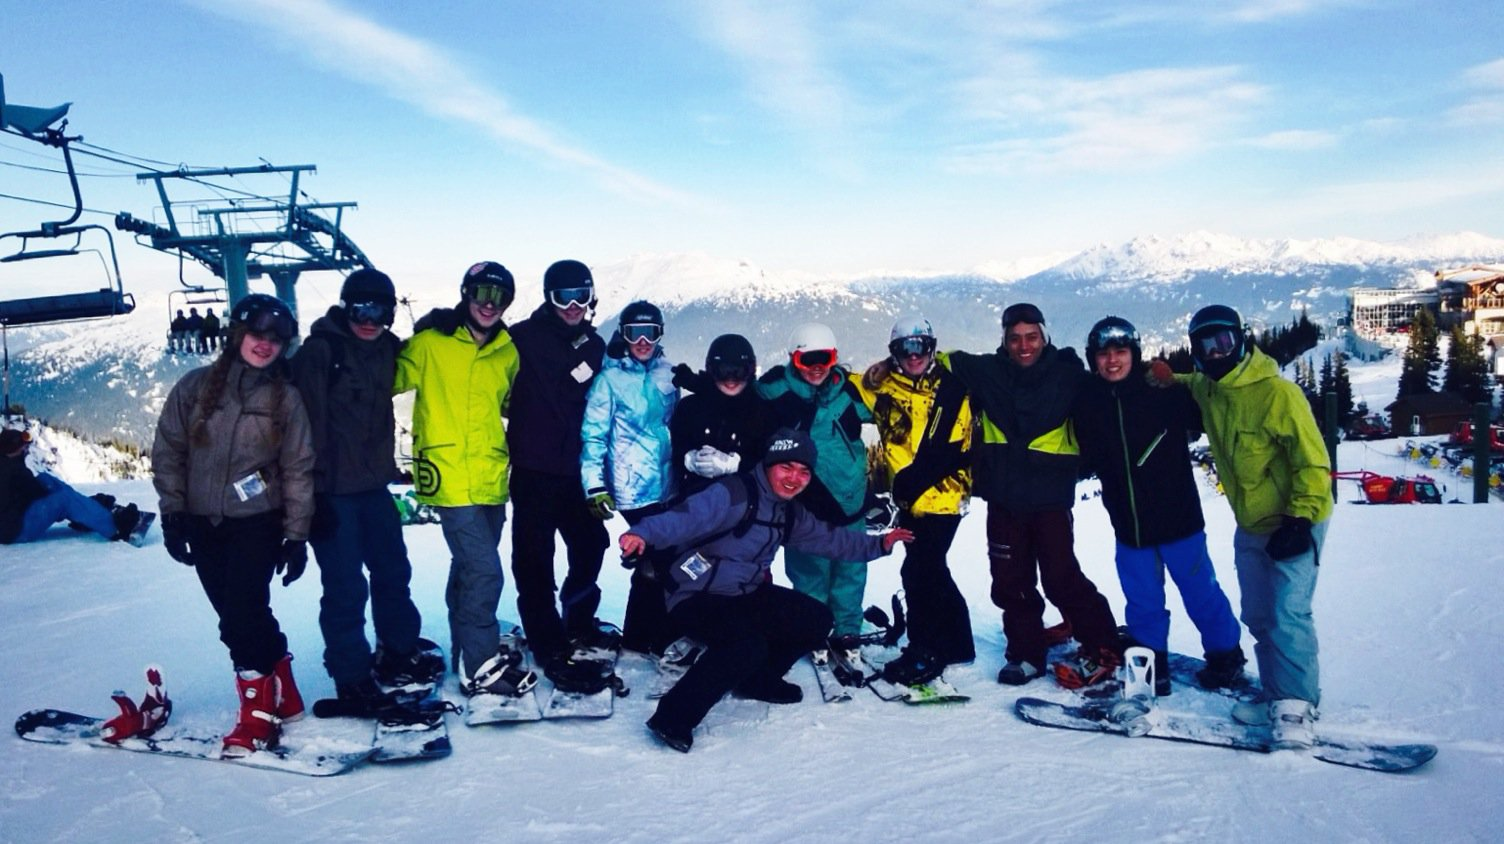 College weekend in Whistler